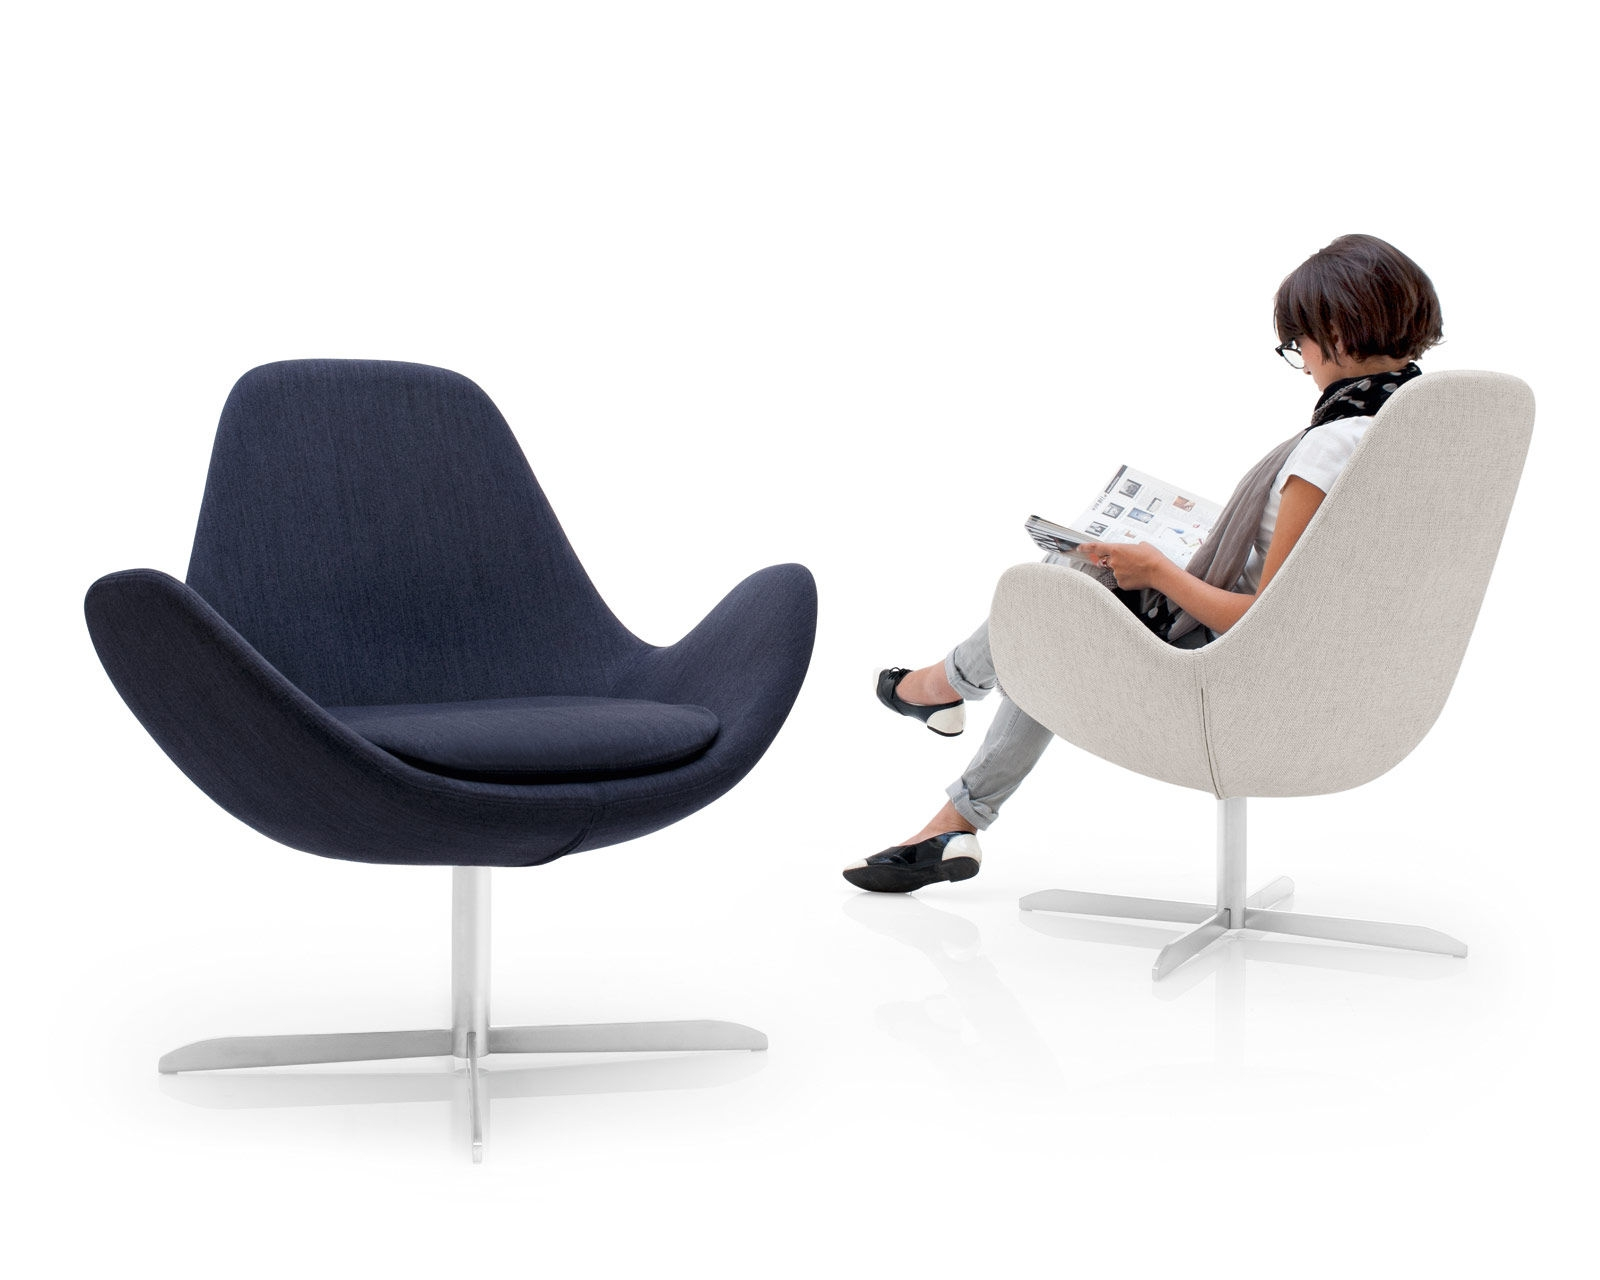 Small Armchairs For Living Room Intended For Small Arm Chairs (Image 12 of 15)